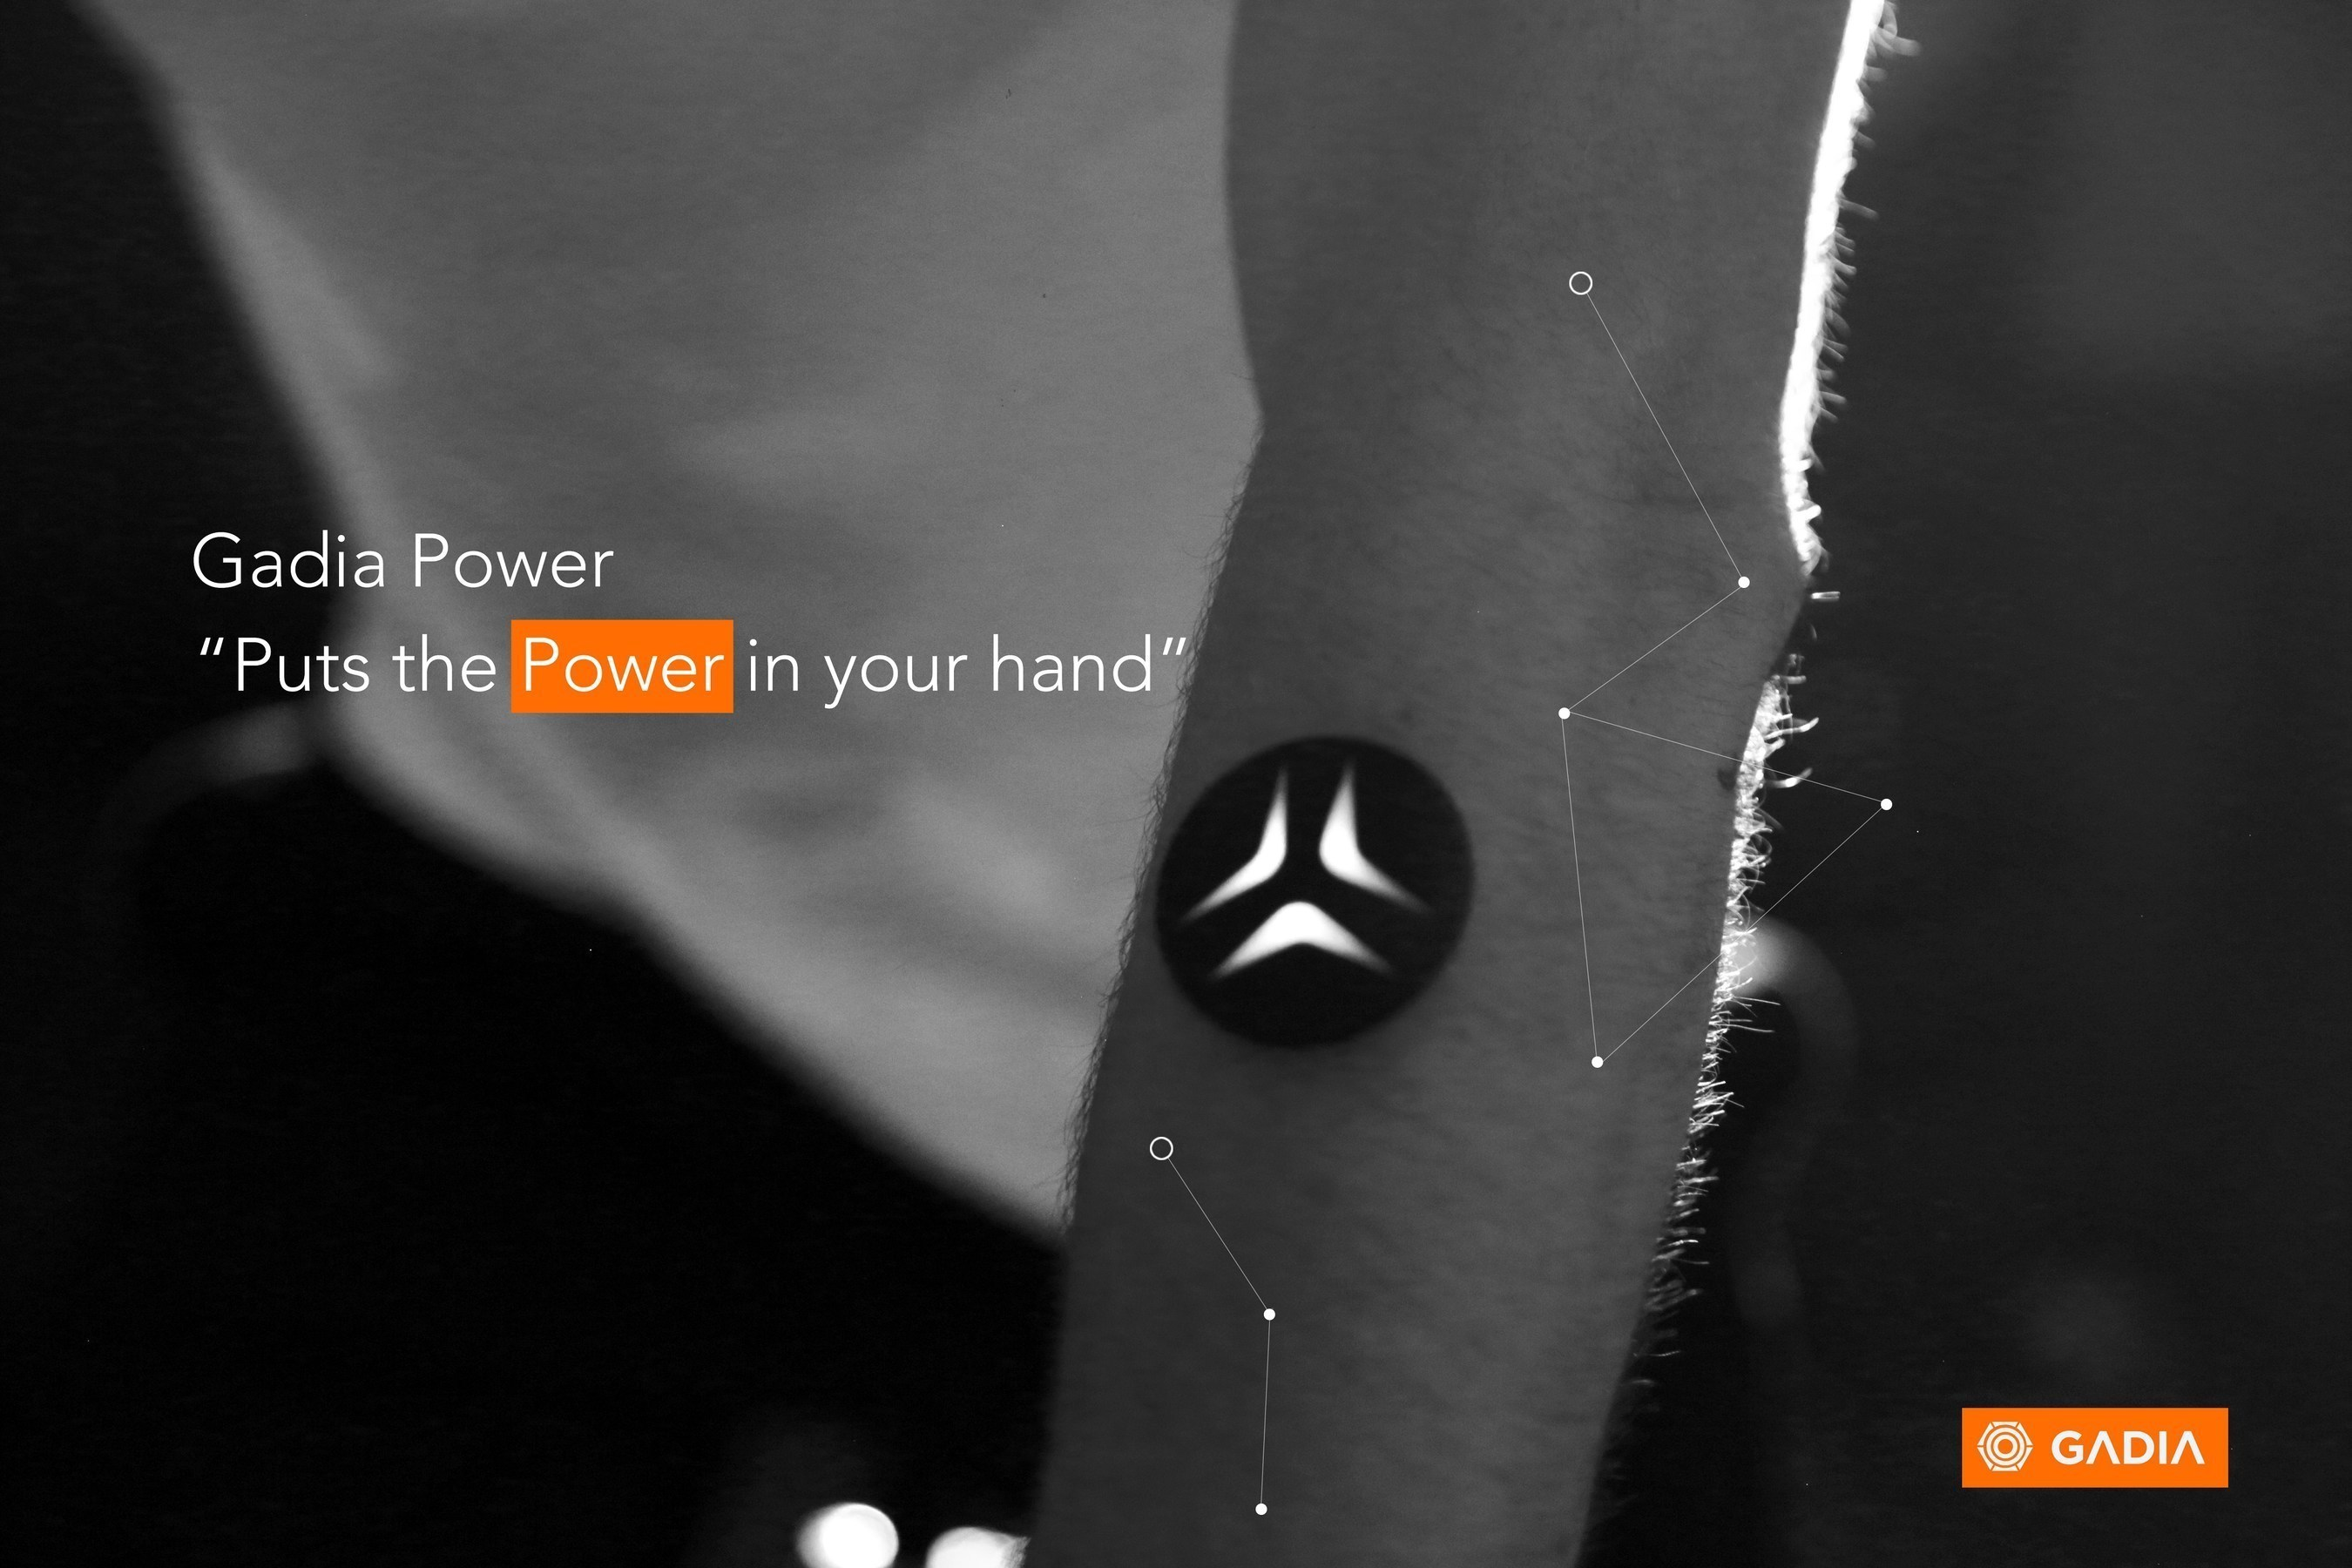 A view of Gadia Power, a bio-sensing gesture control wearable. The project has now launched on Indiegogo.